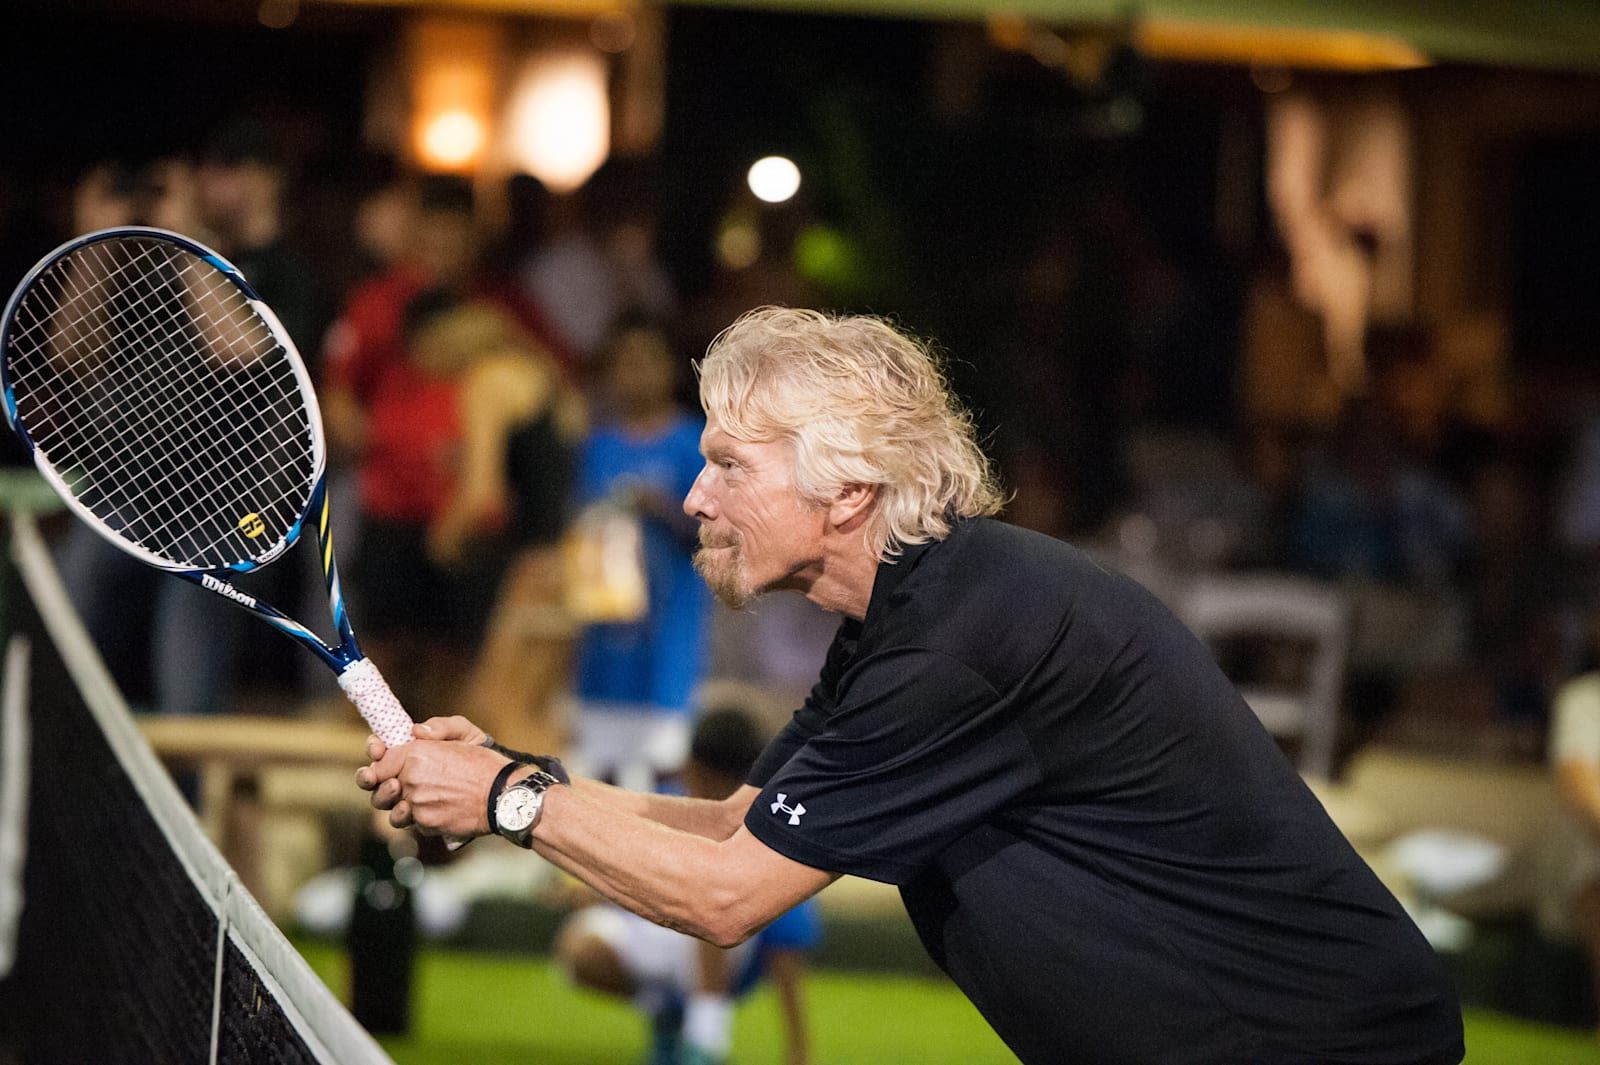 Richard Branson holding a tennis racket